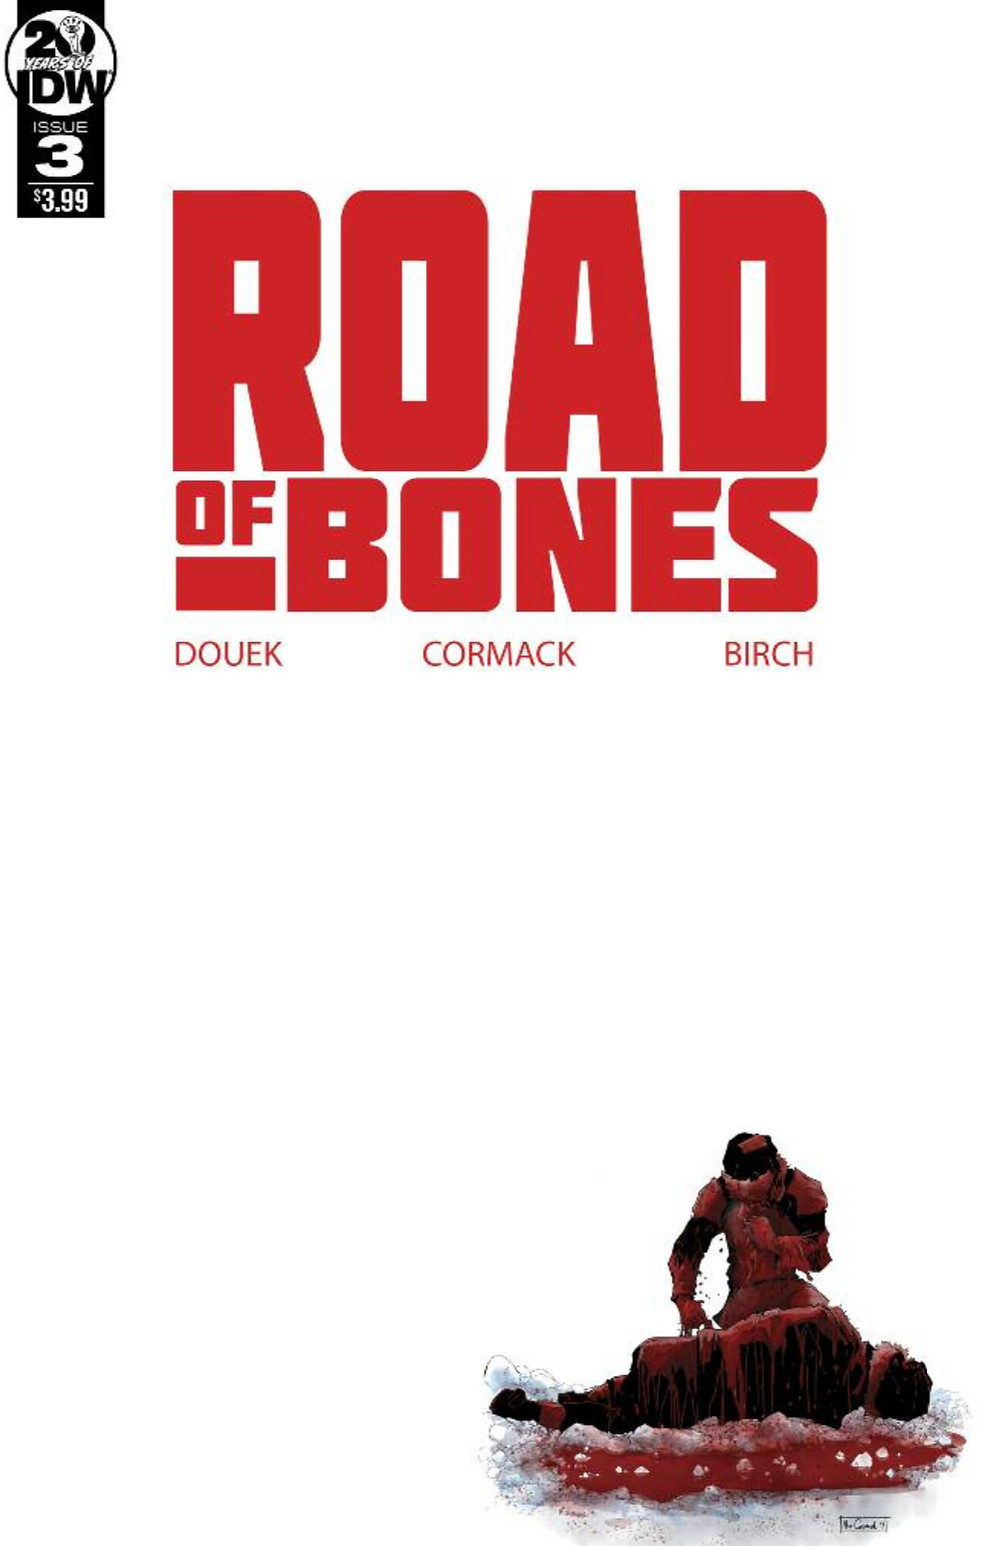 Road of Bones, issue #3, cover, IDW, Douek/Cormack